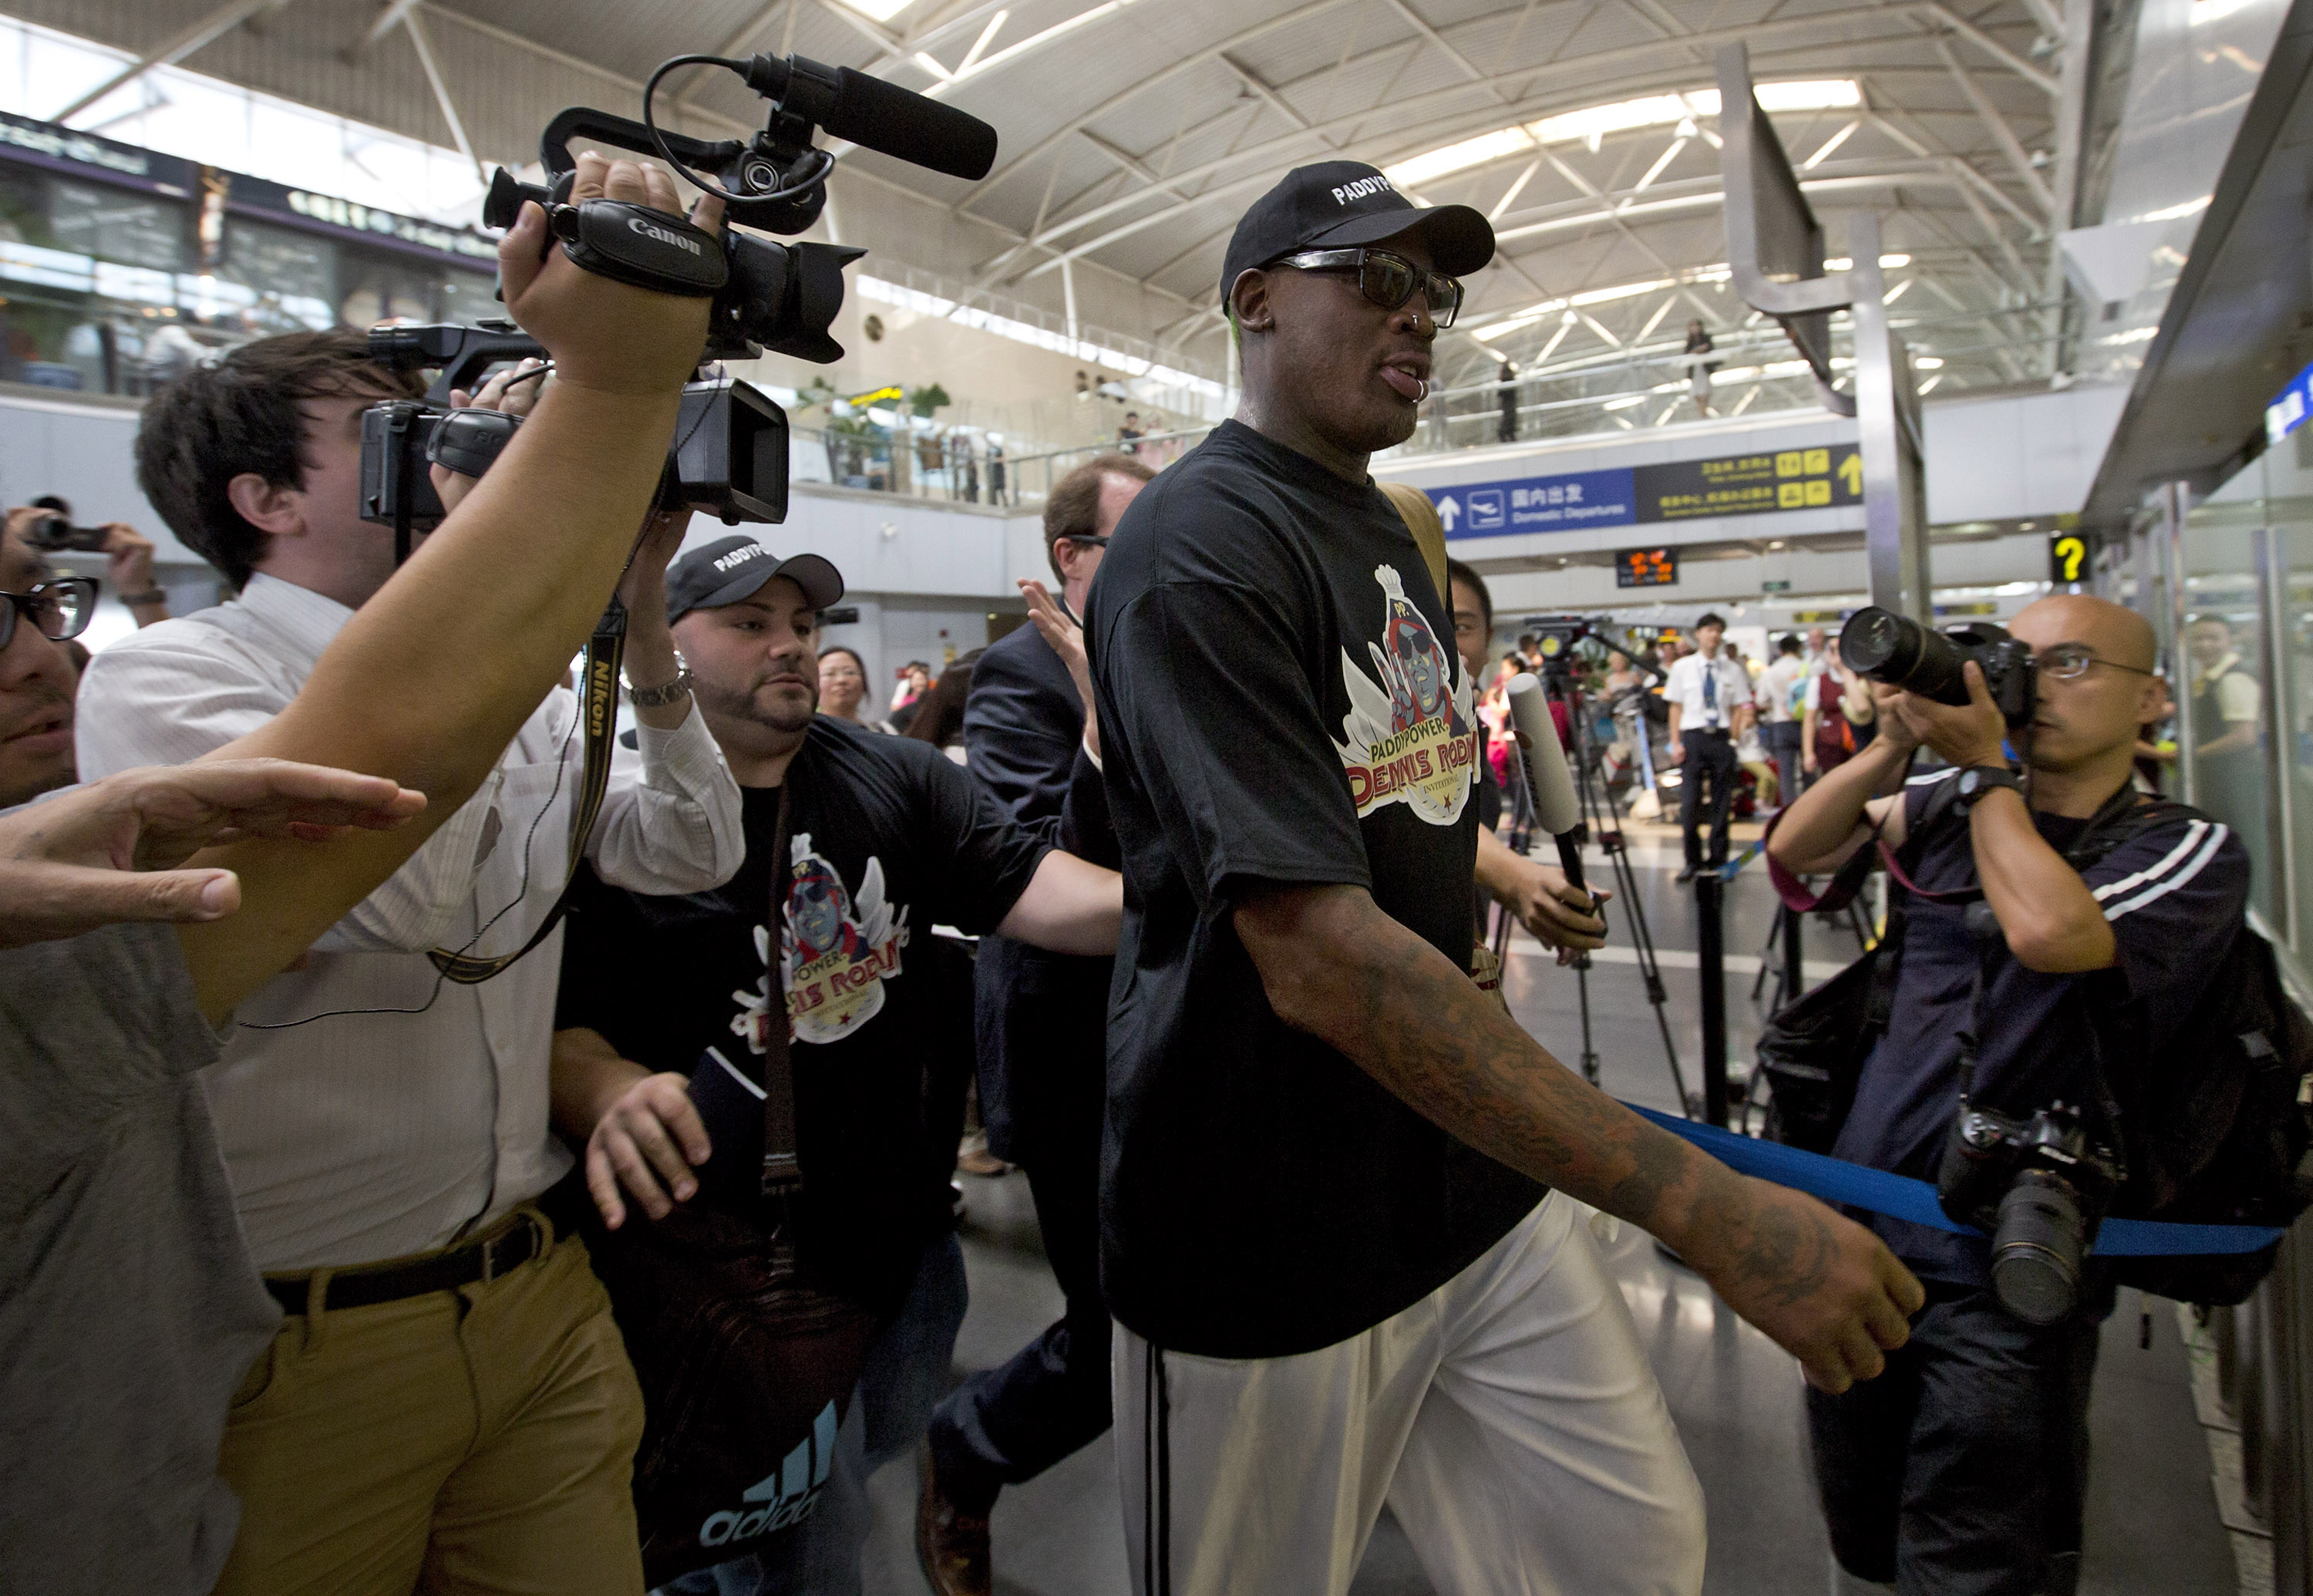 Rodman in NKorea to prep for game on leader's Bday